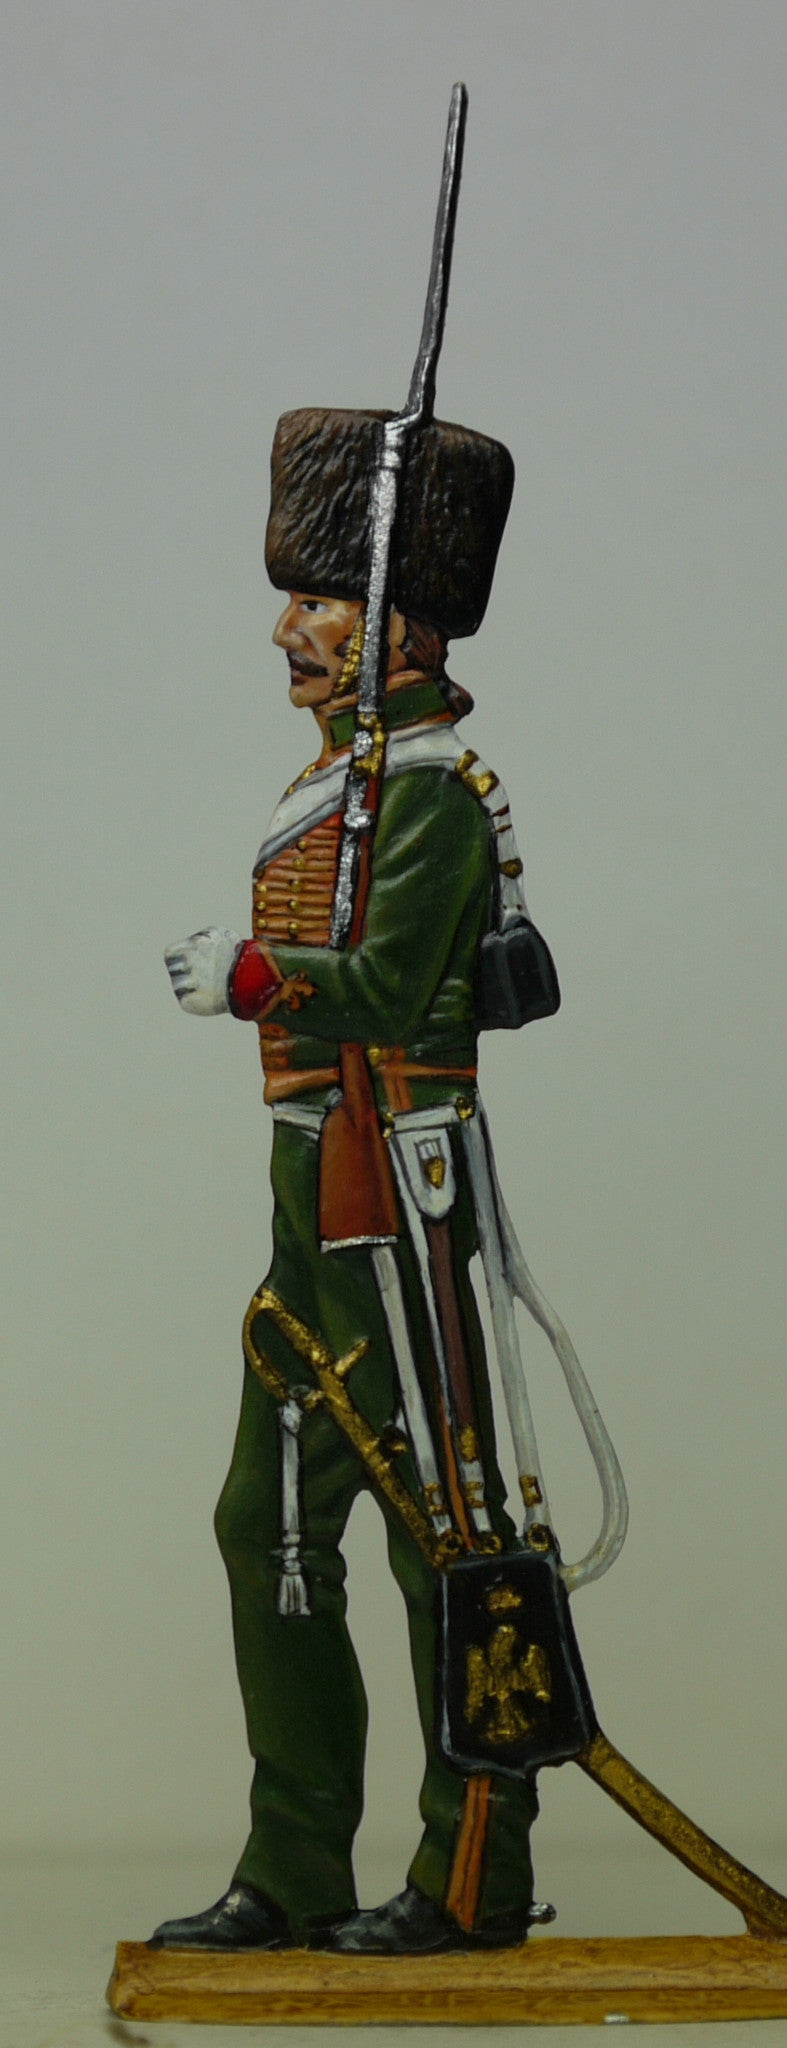 Chasseur on guard duty (profile) - Glorious Empires-Historical Miniatures